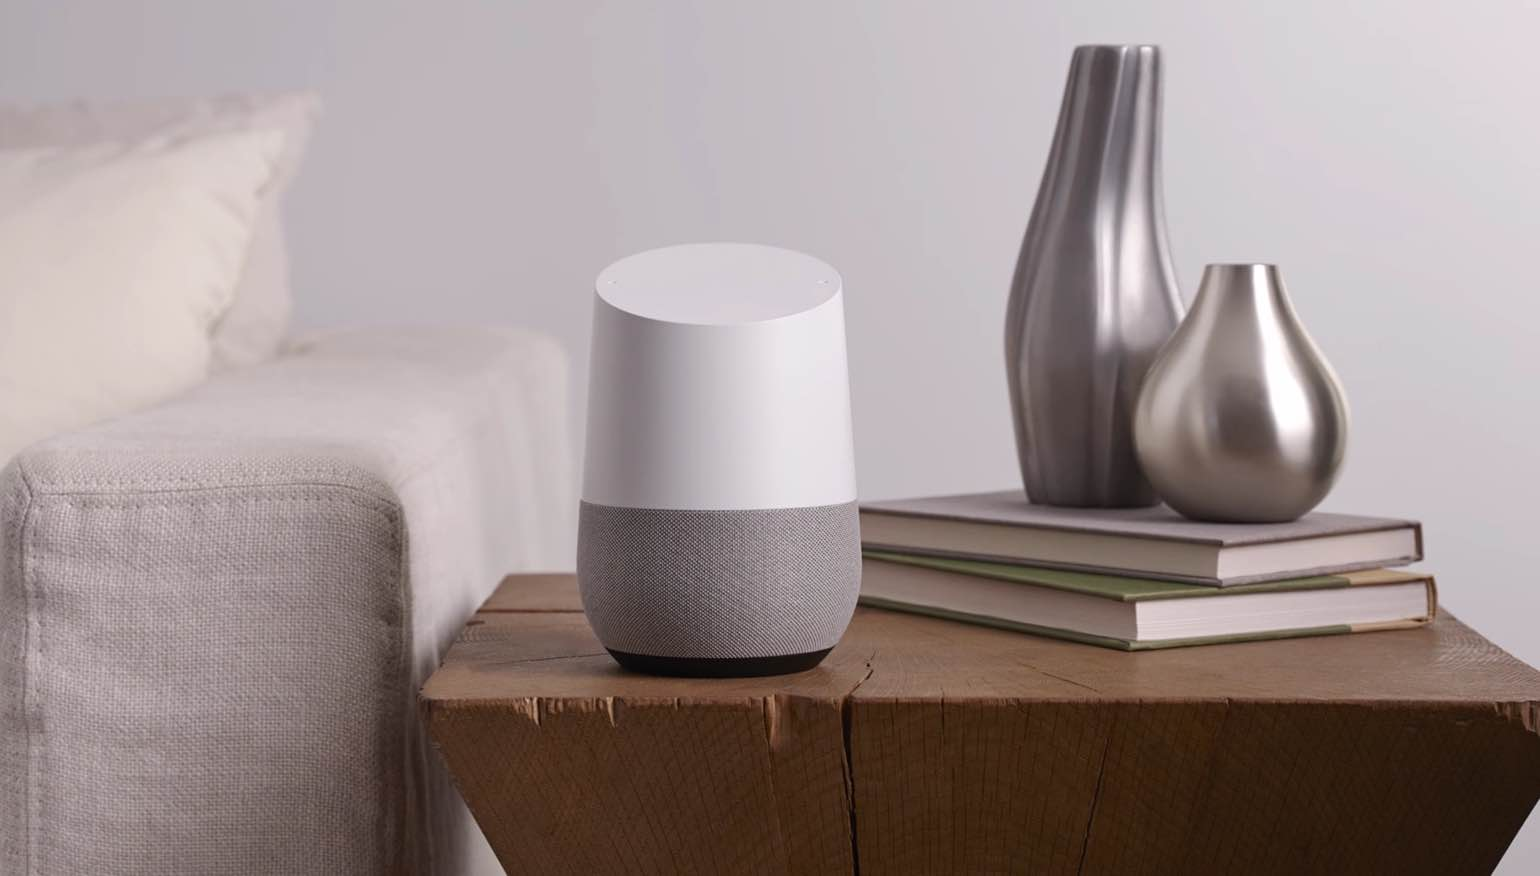 Zo stel je routines en shortcuts in met Google Home en Google